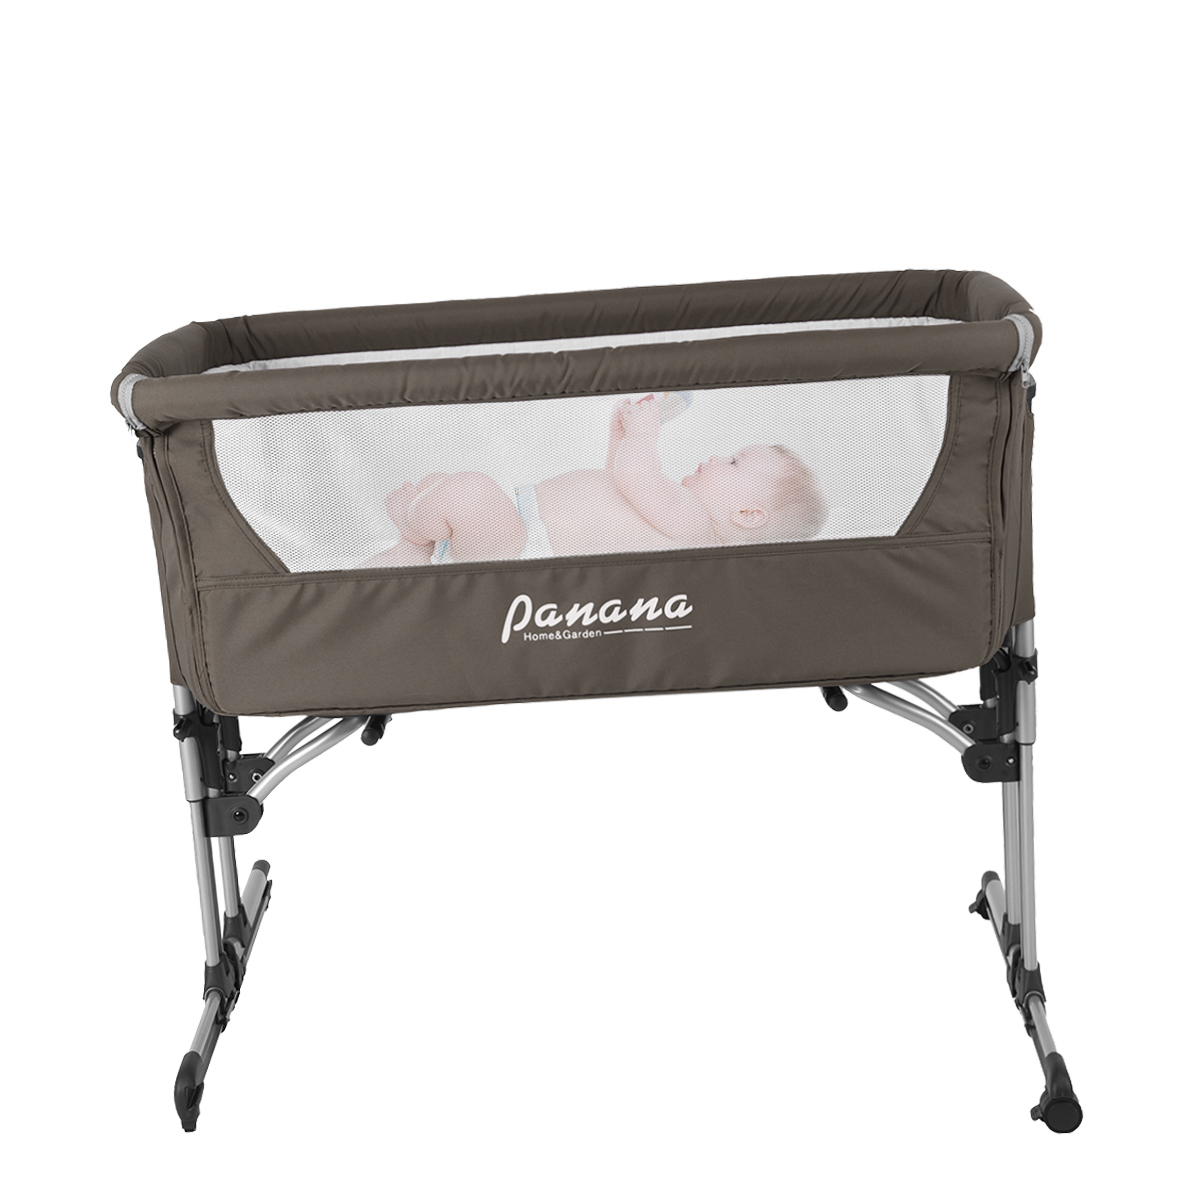 2 in 1 Baby Crib Swing Bedside Cot Bed Adjustable With Mosquito